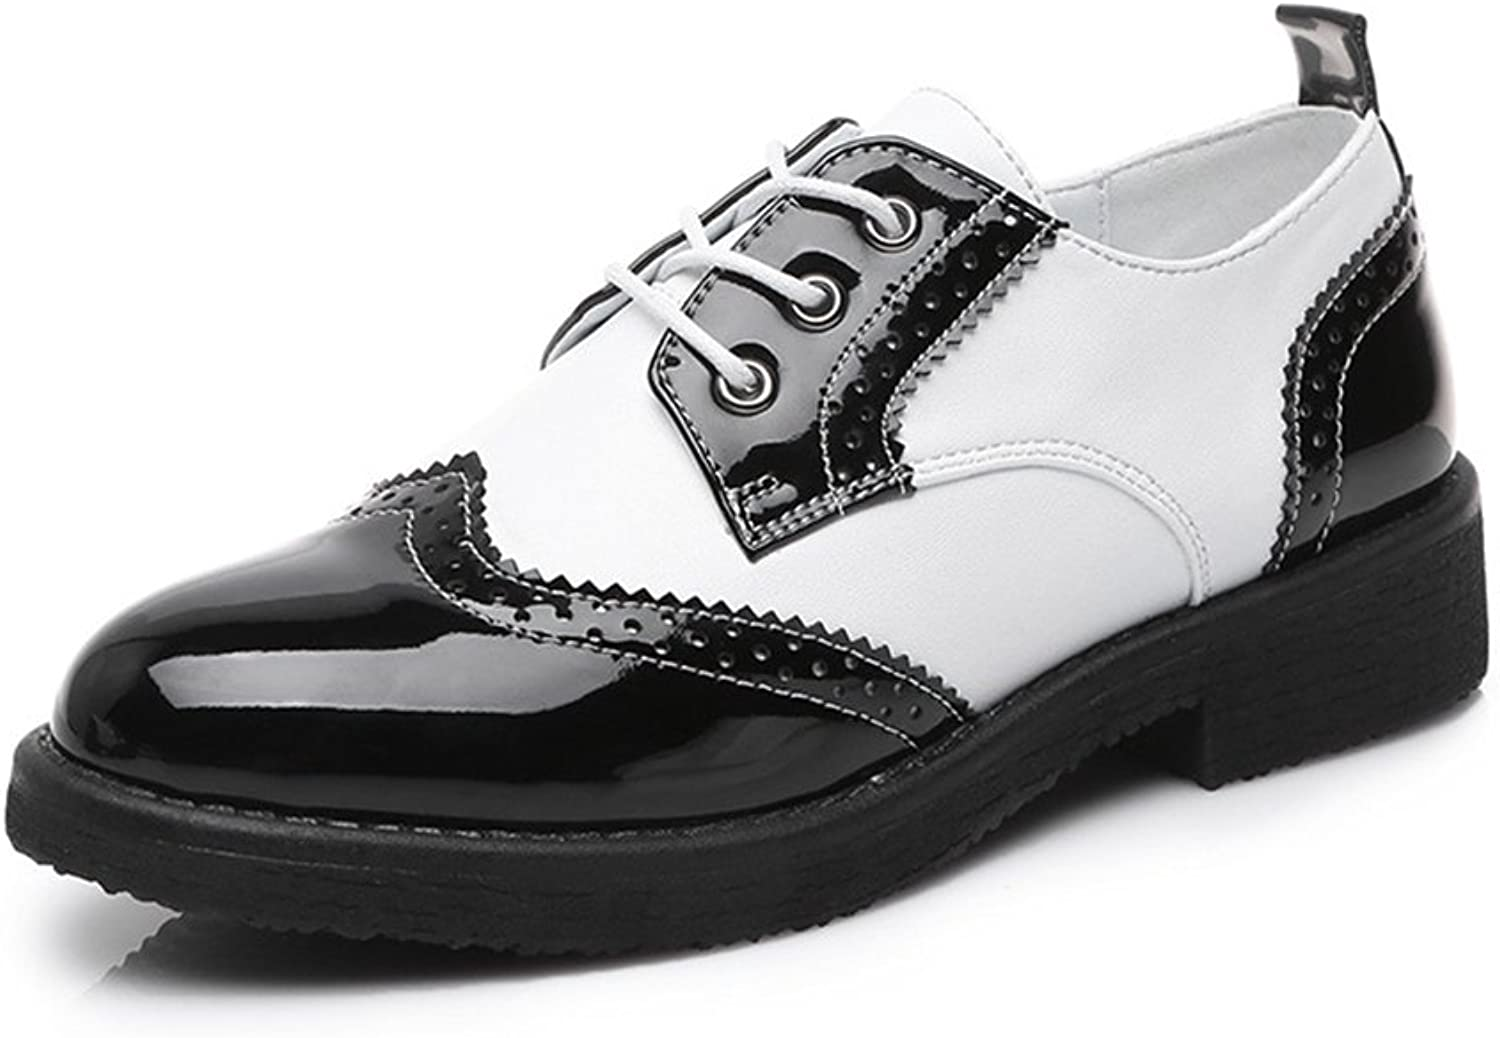 T-JULY Women's Modern Oxfords shoes - Perforated Wingtip Low Heel Two Tone Casual shoes